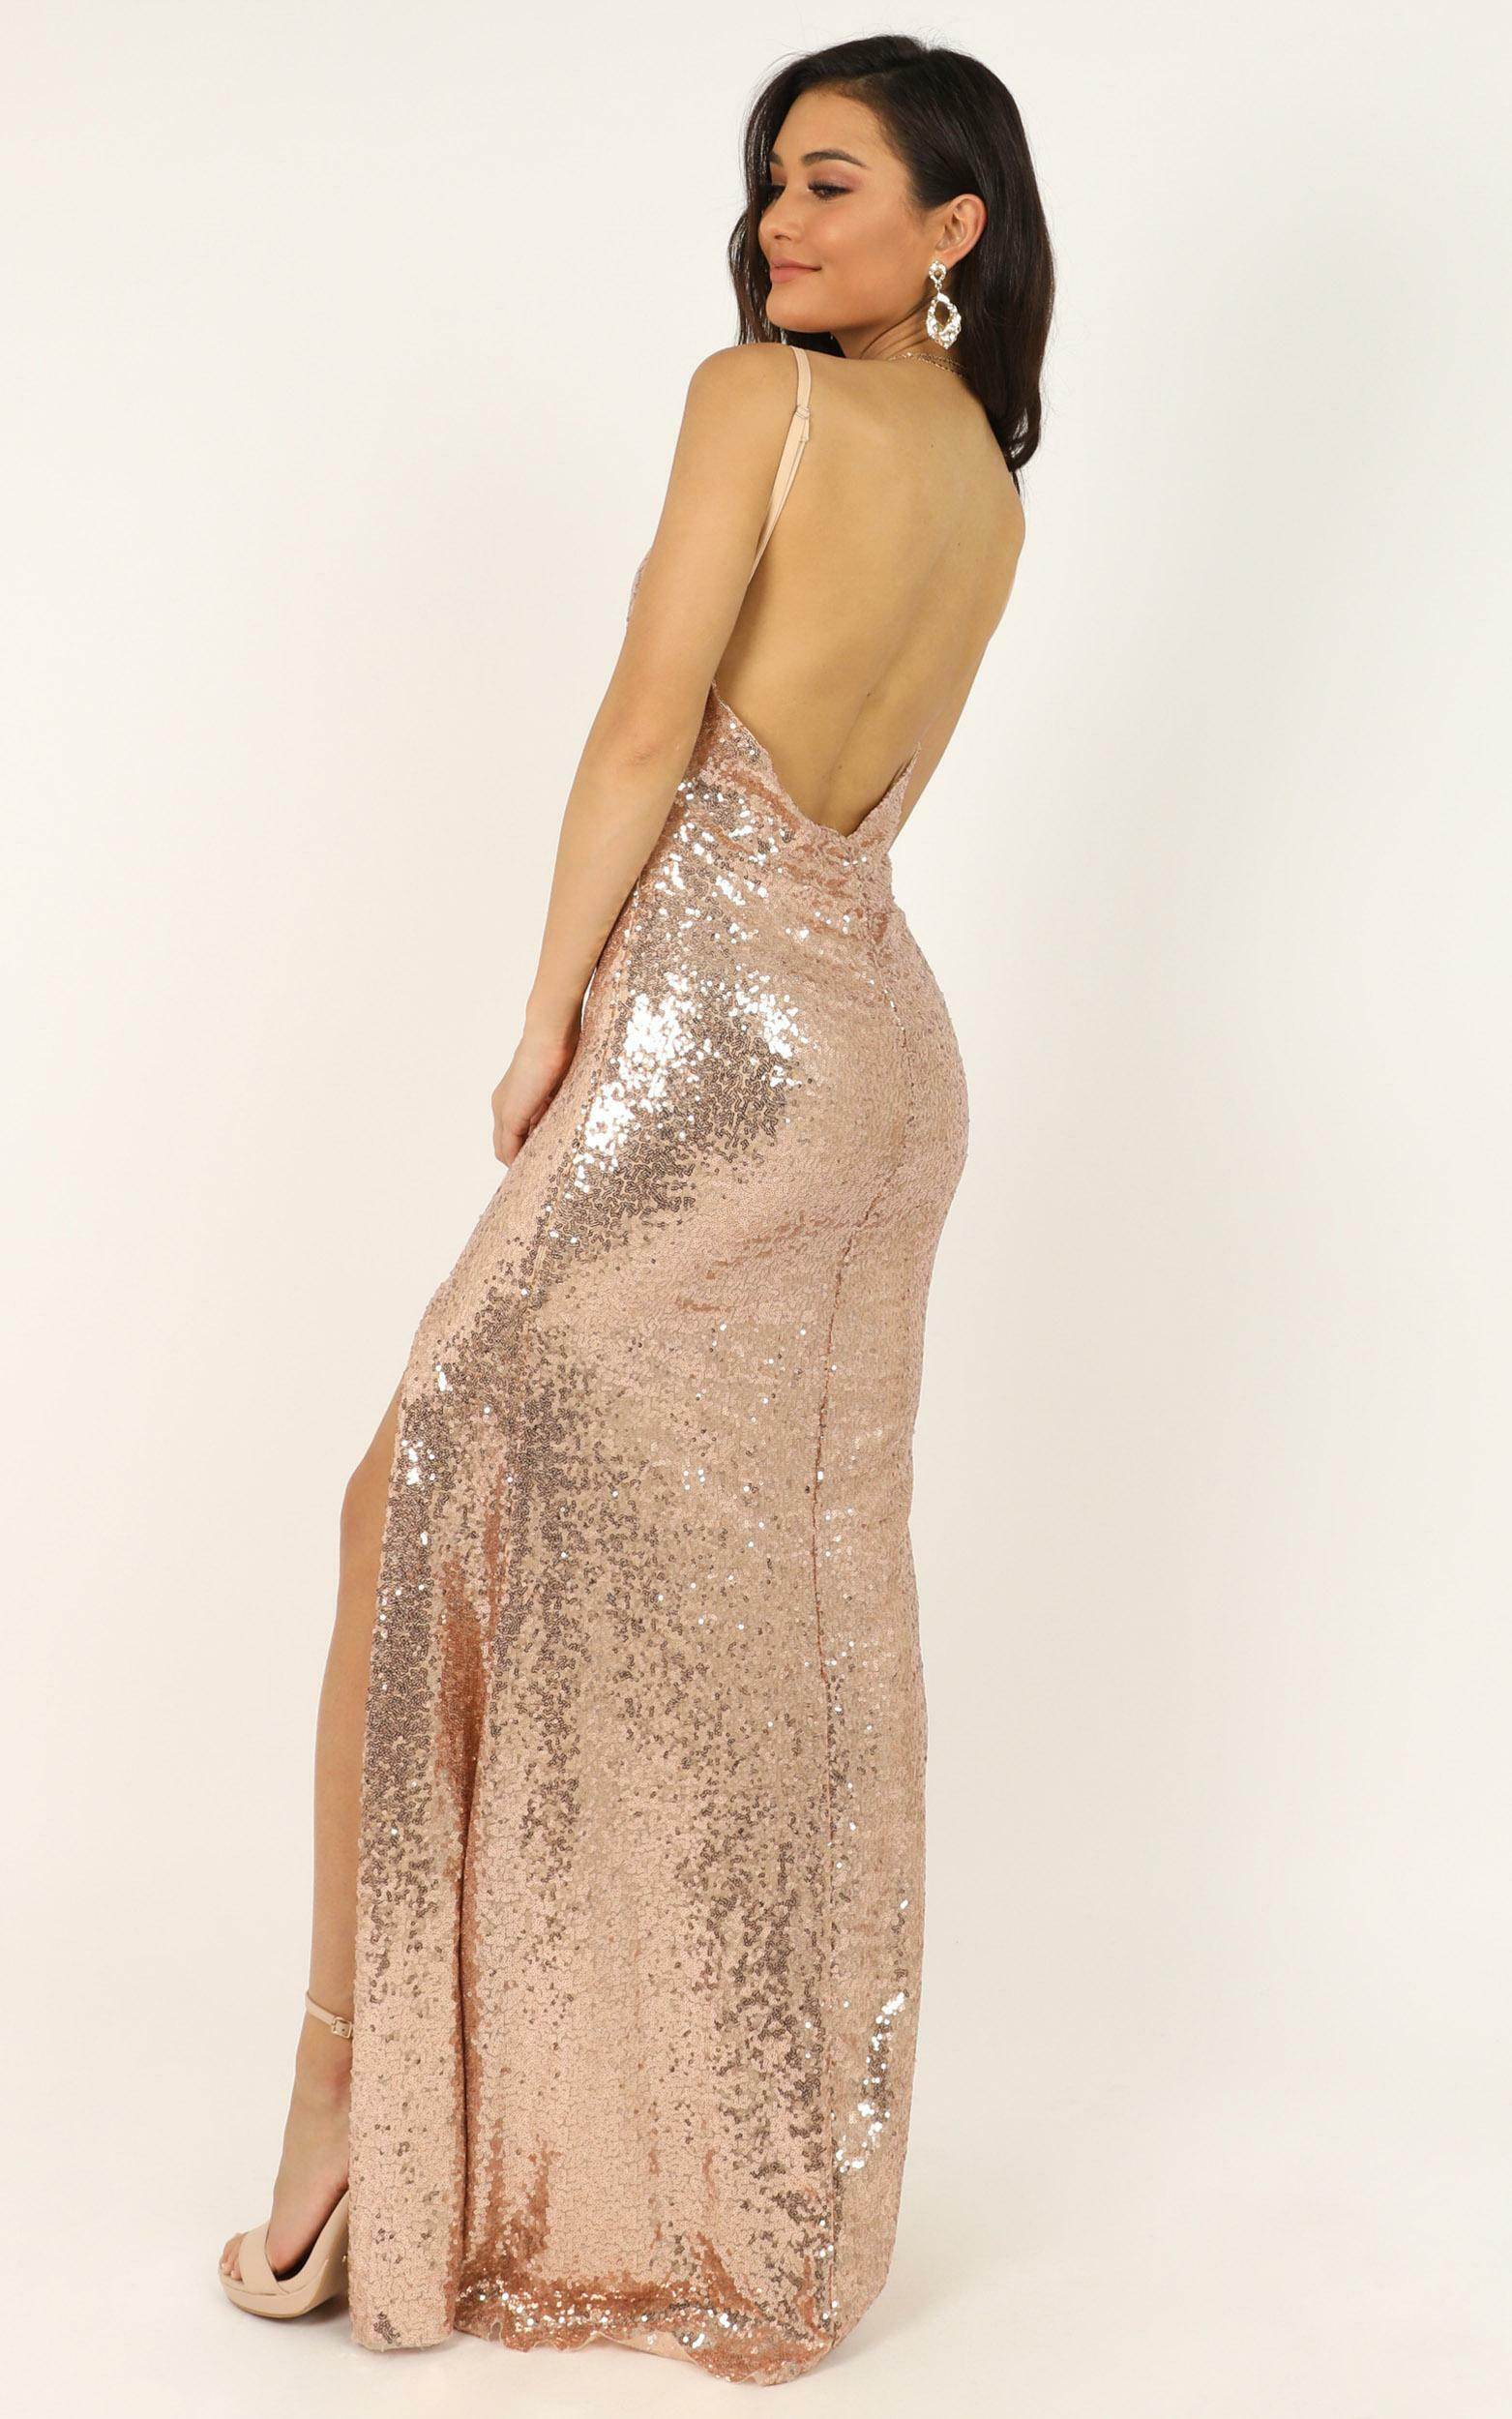 My Kind of Occasion Dress in gold sequin - 12 (L), Gold, hi-res image number null